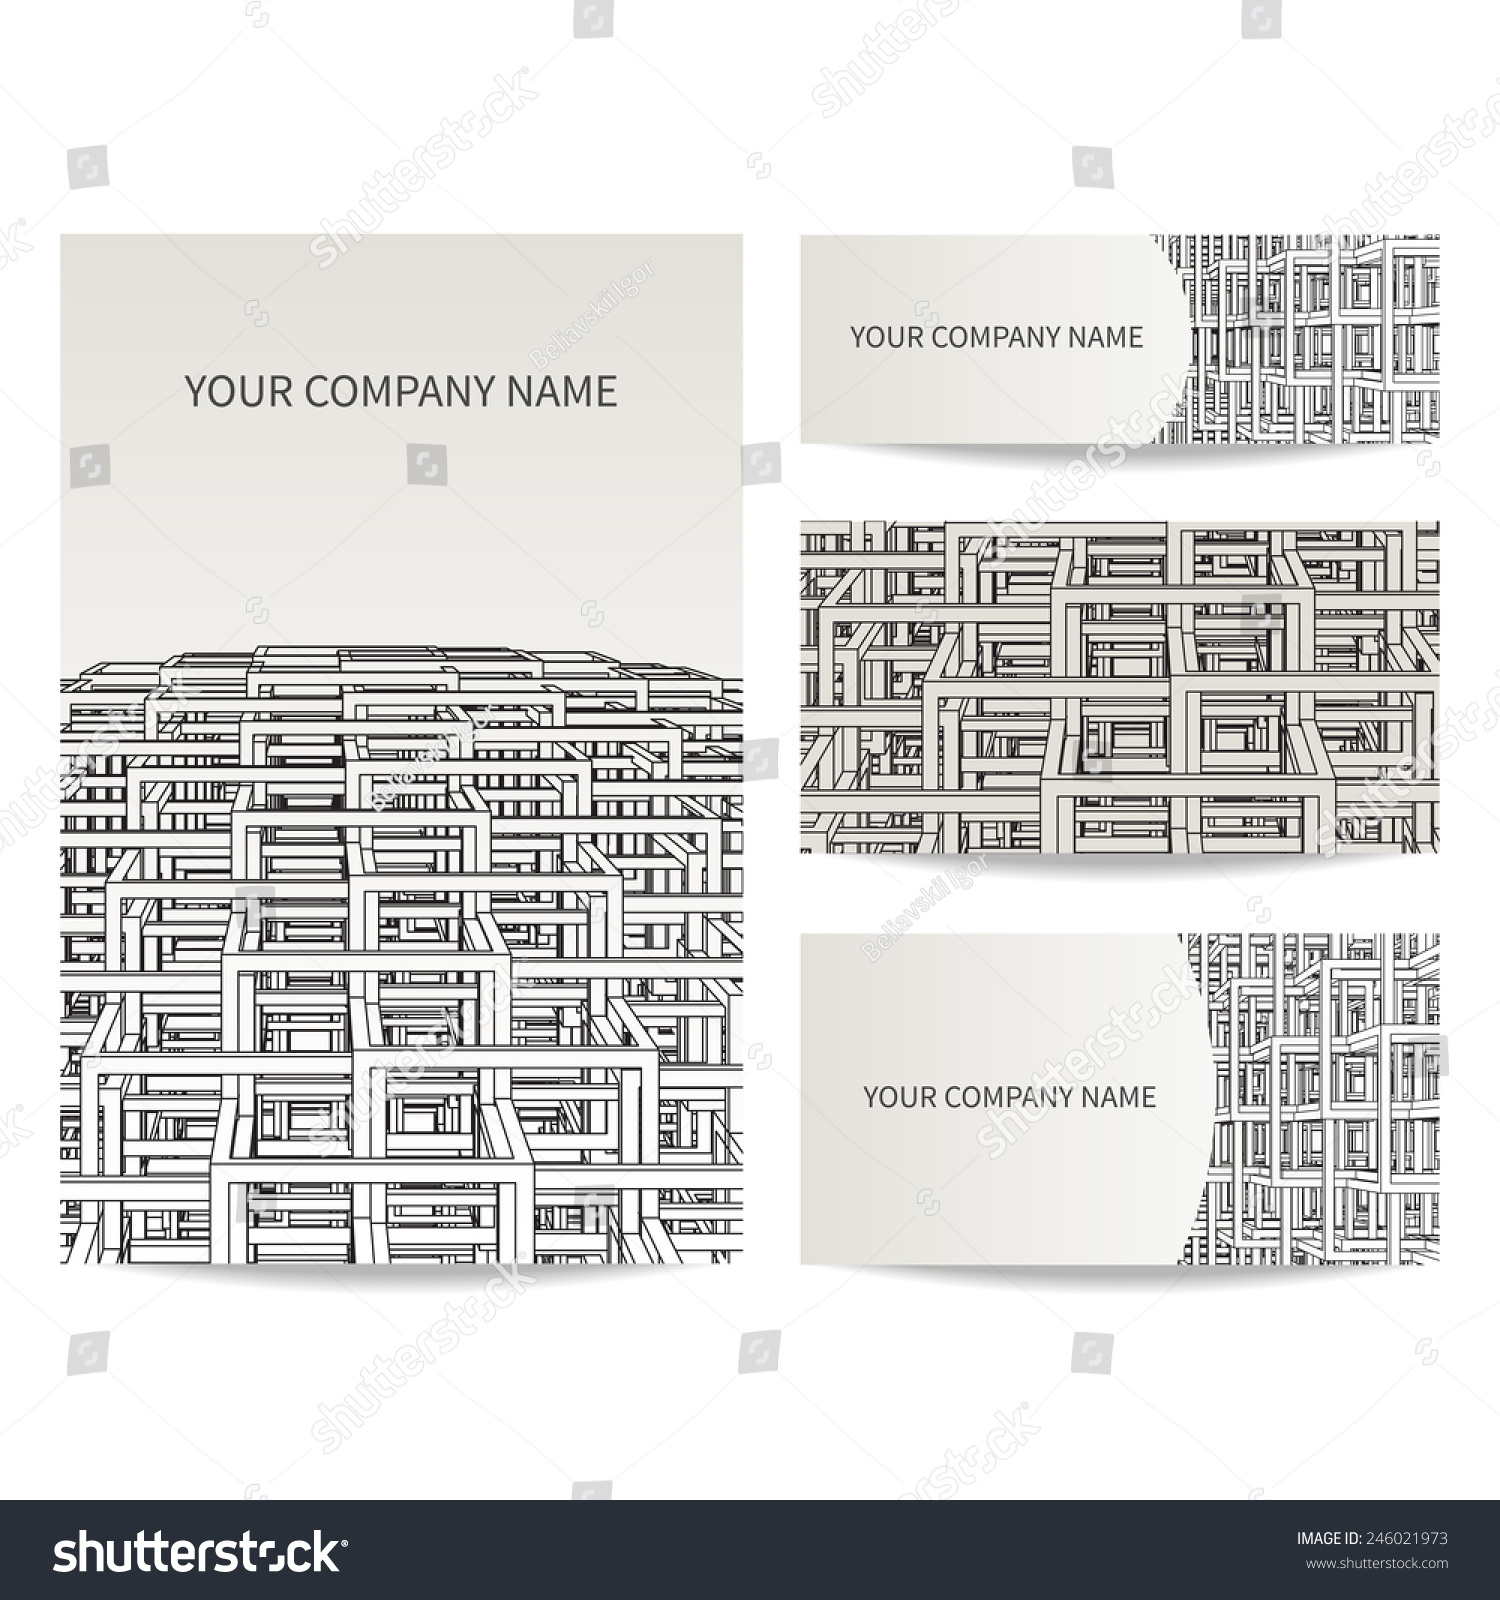 Set business card invitation card templates stock vector 246021973 set of business card and invitation card templates architecture and construction concept vector design stopboris Images